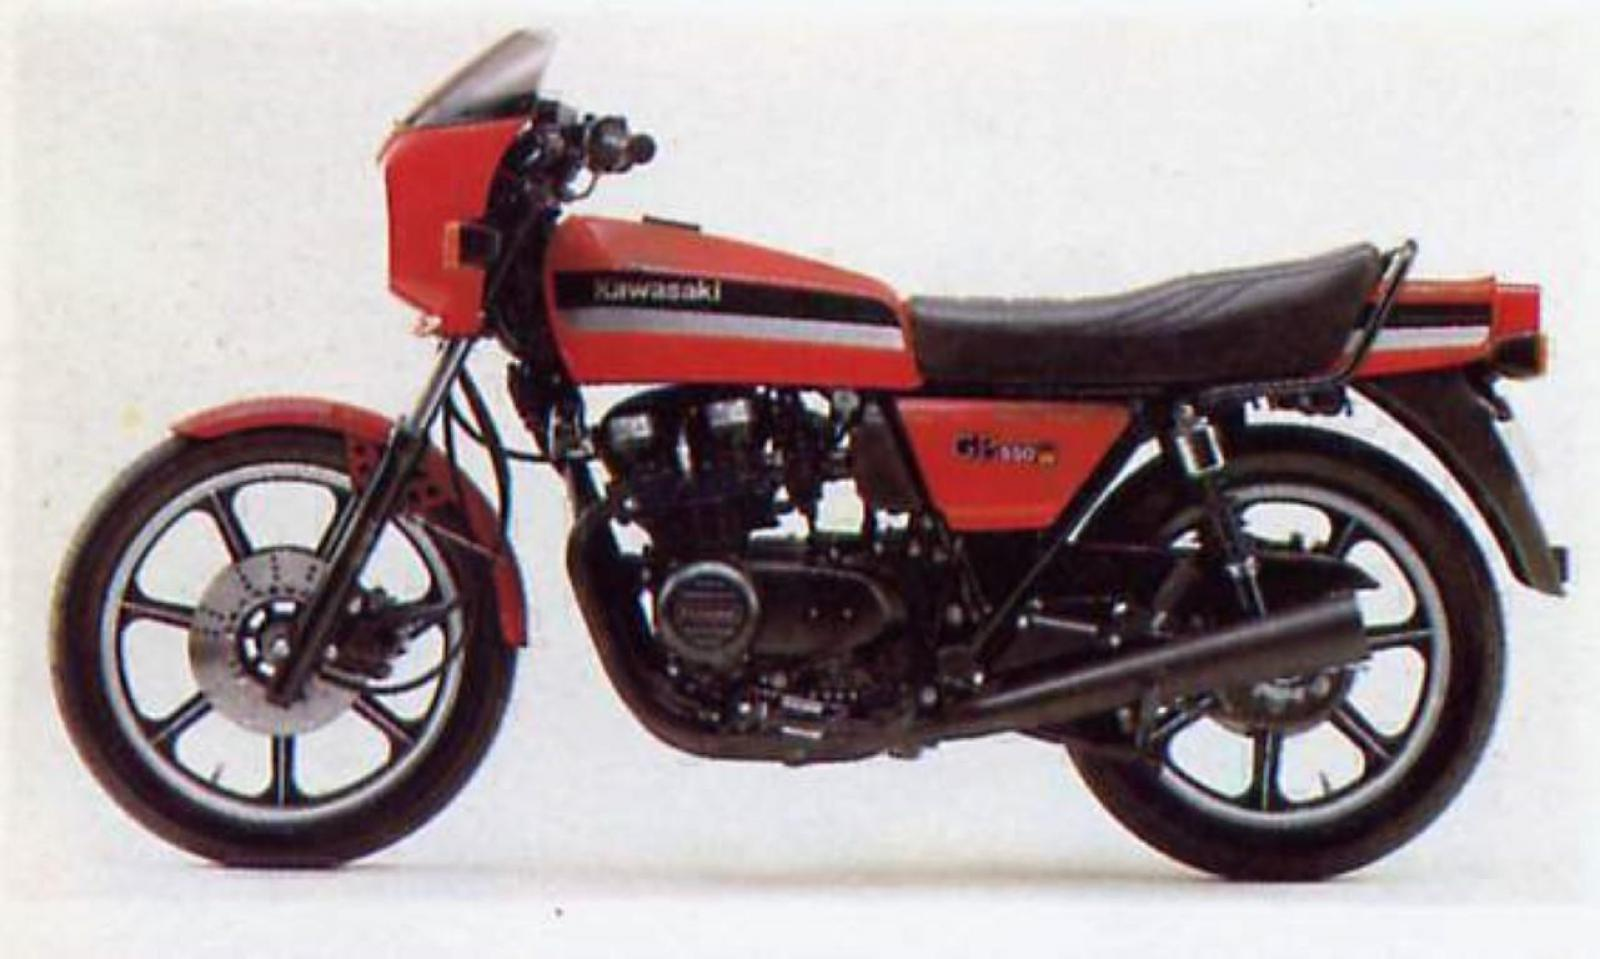 Kawasaki Gpz 550 Pics Specs And List Of Seriess By Year Onlymotorbikes Com